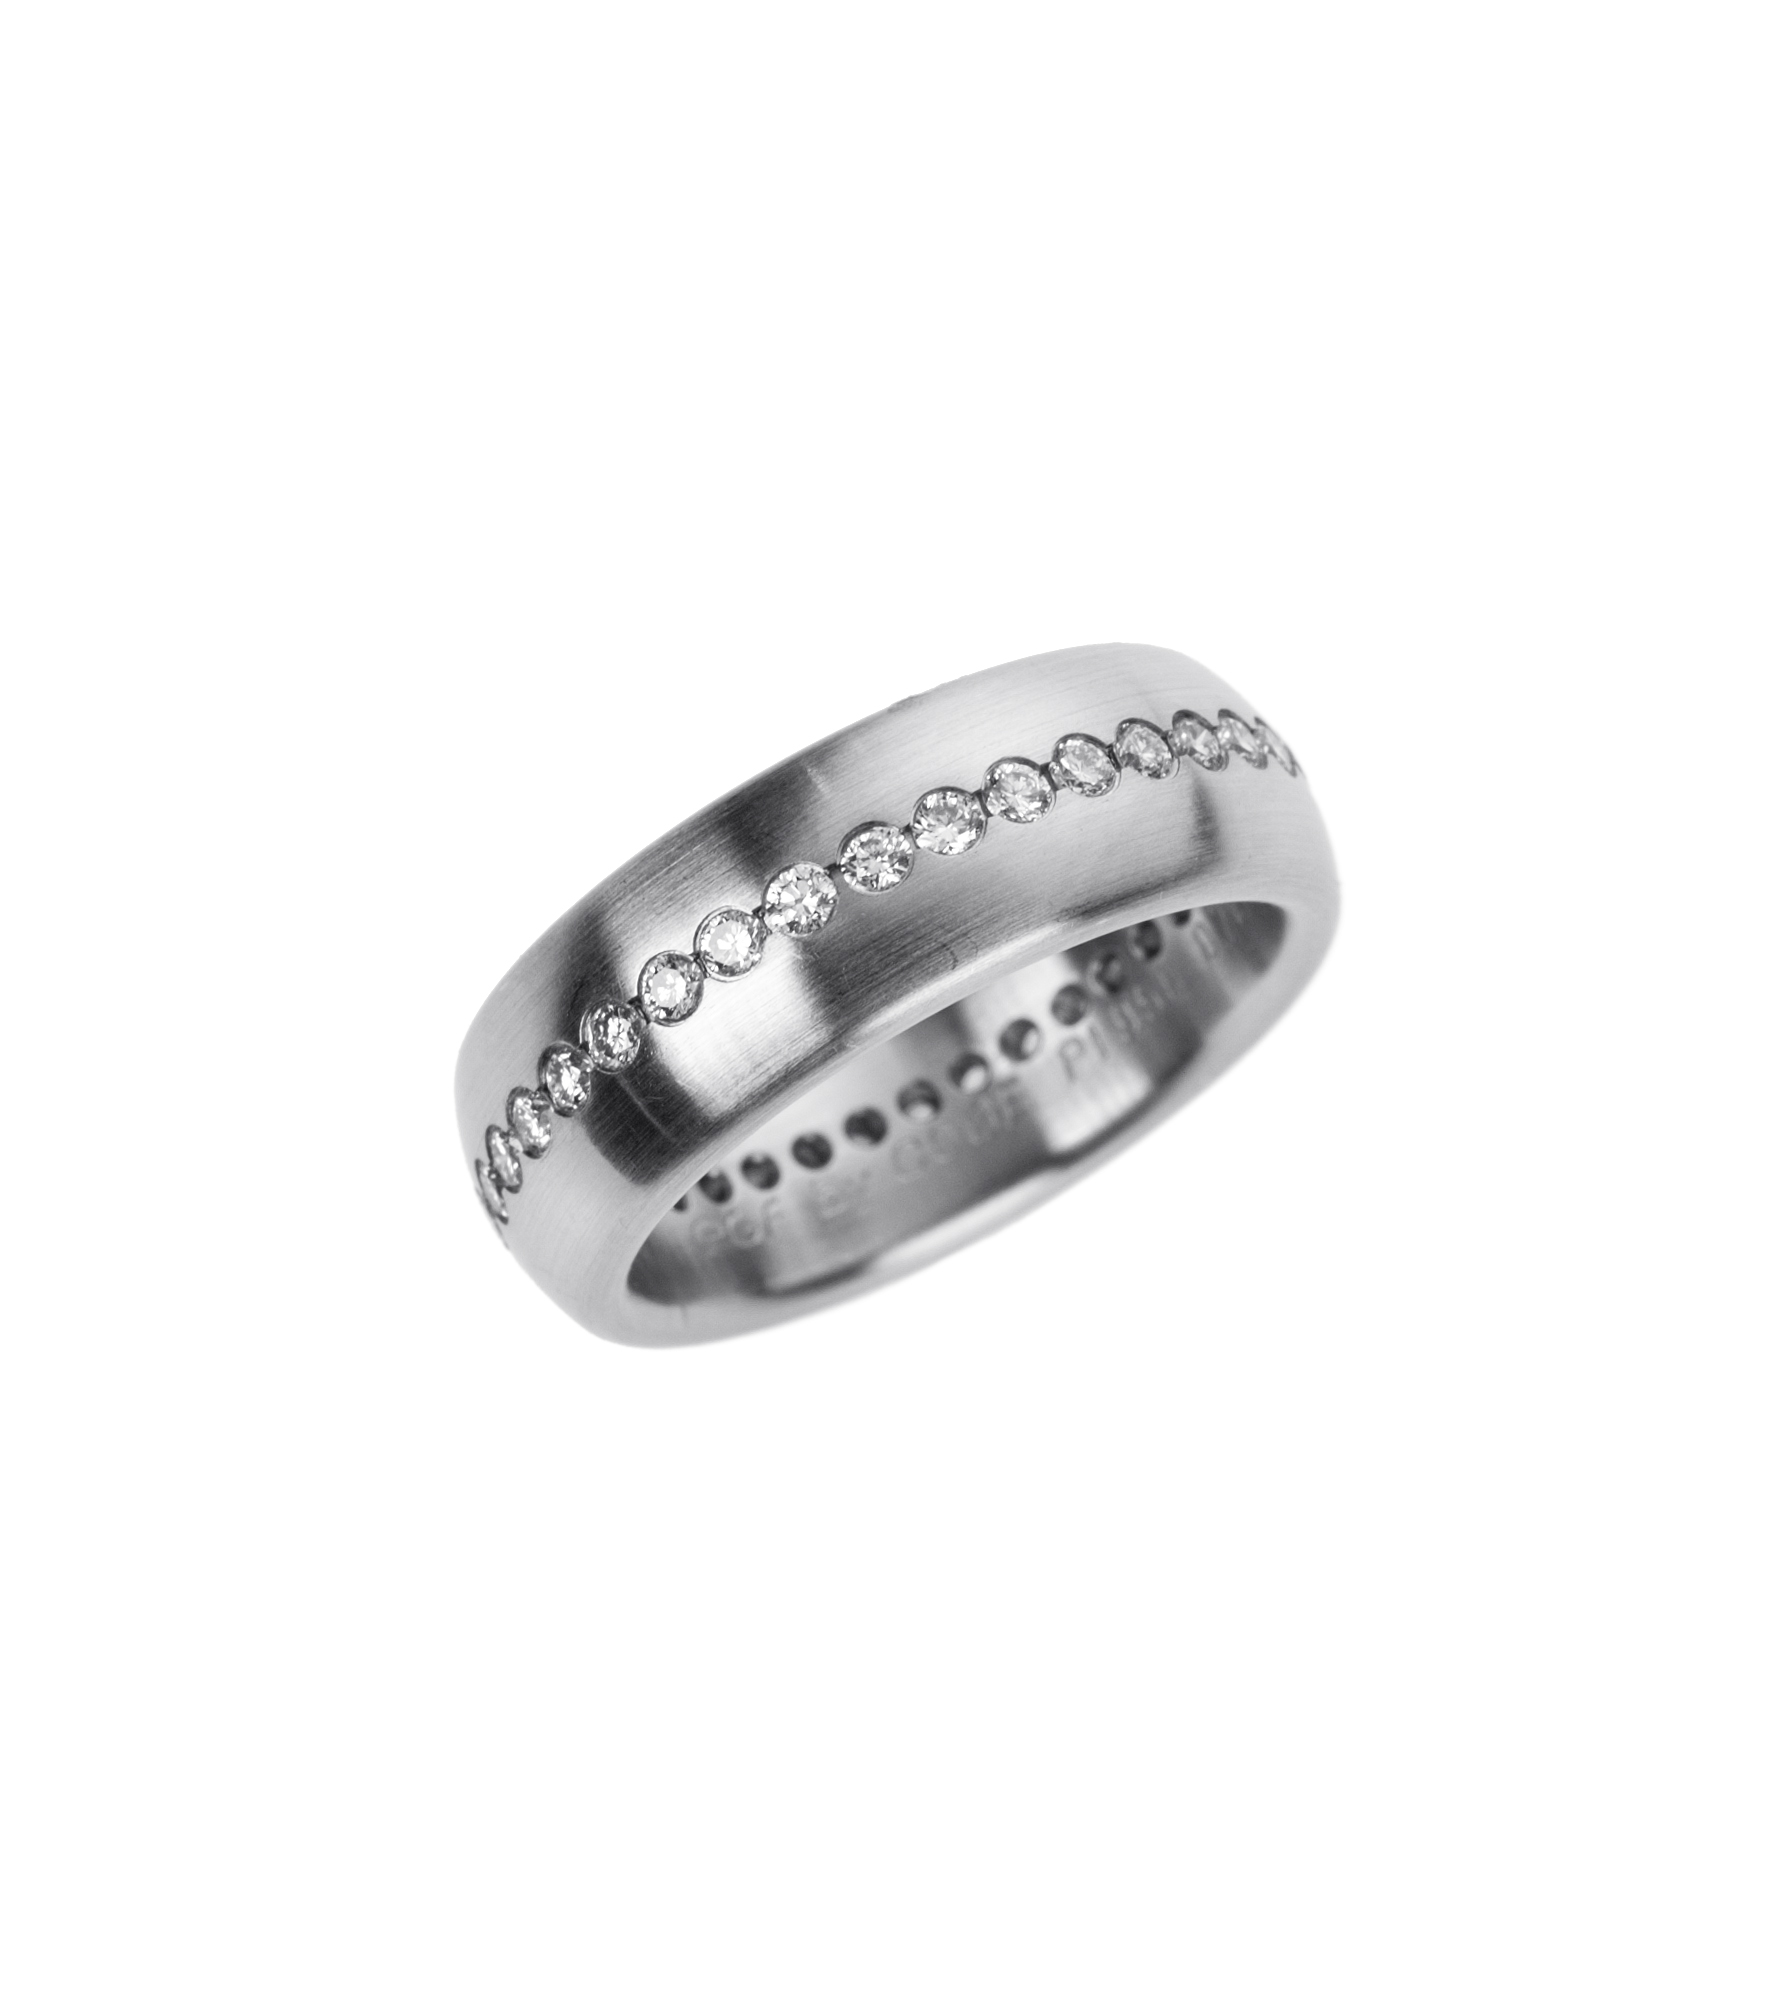 Diamond and platinum eternity band